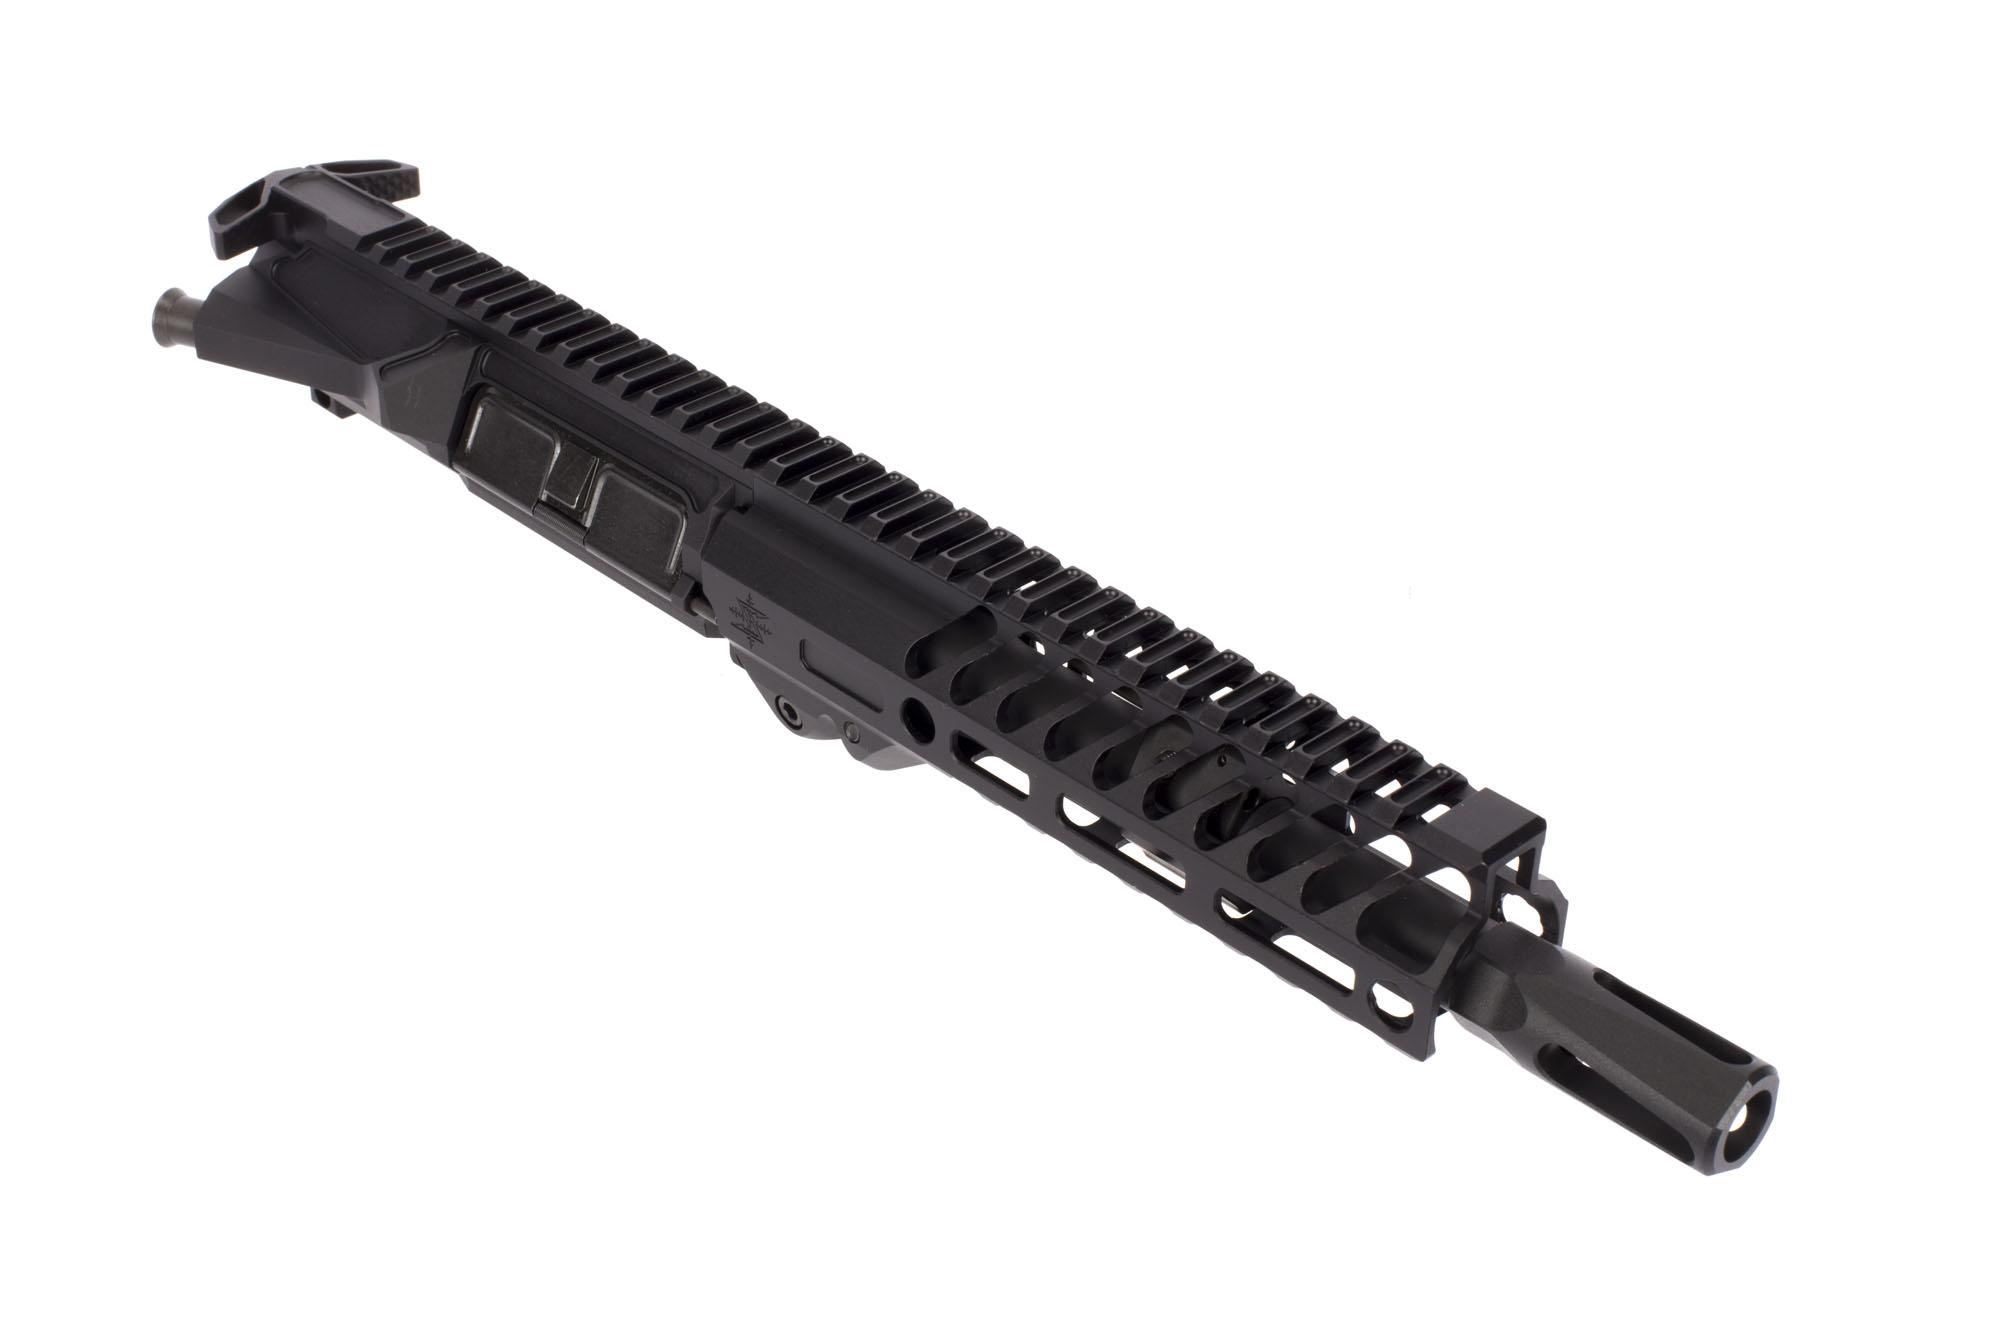 Seekins Precision 8in NX8 300 BLK 1:7 Pistol Length HBAR Complete Upper - 7in NOXs M-LOK Rail